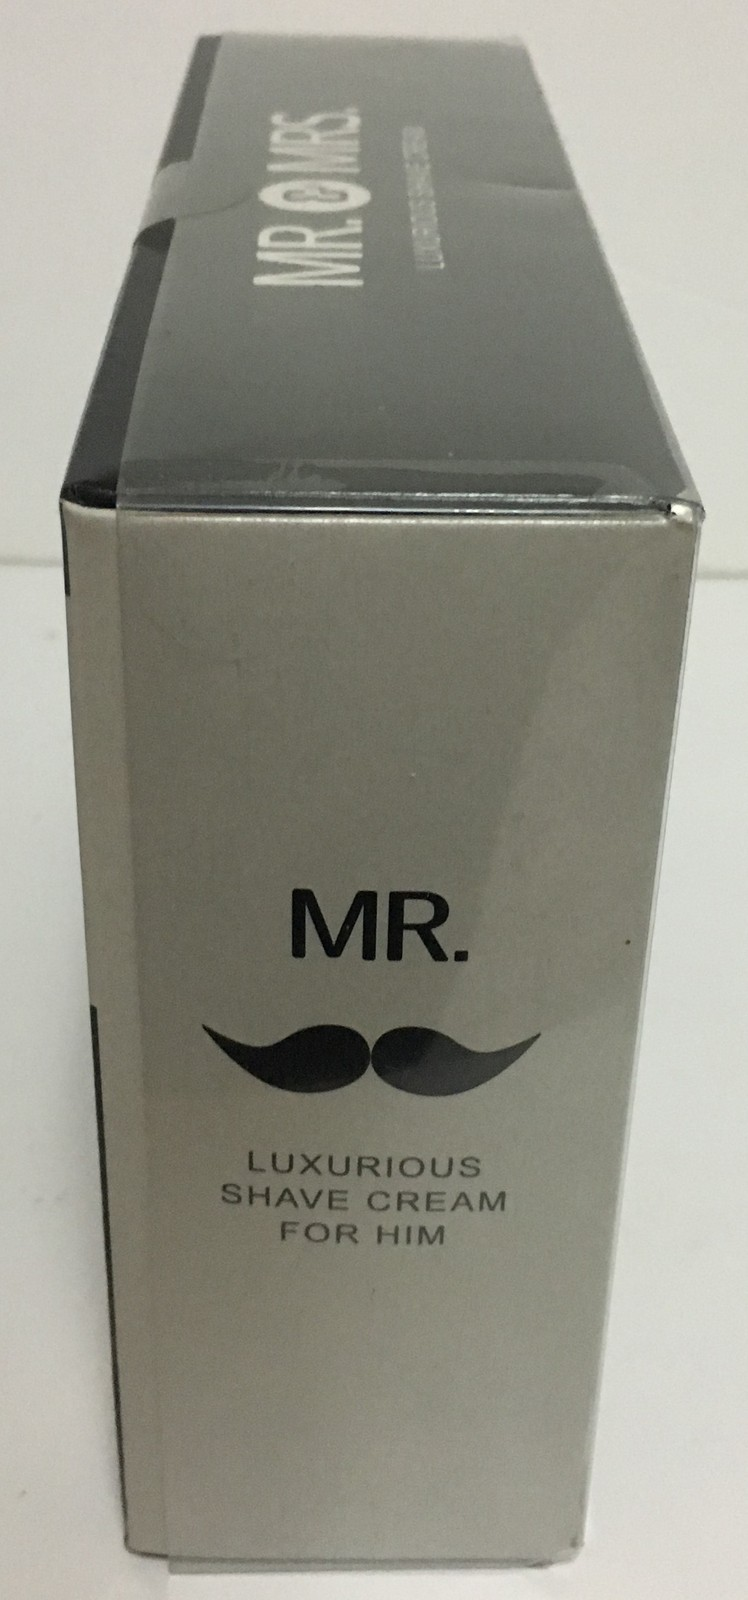 Mr. & Mrs. Luxurious Shave Cream Gift Set NIB 4 OZ MADE IN USA